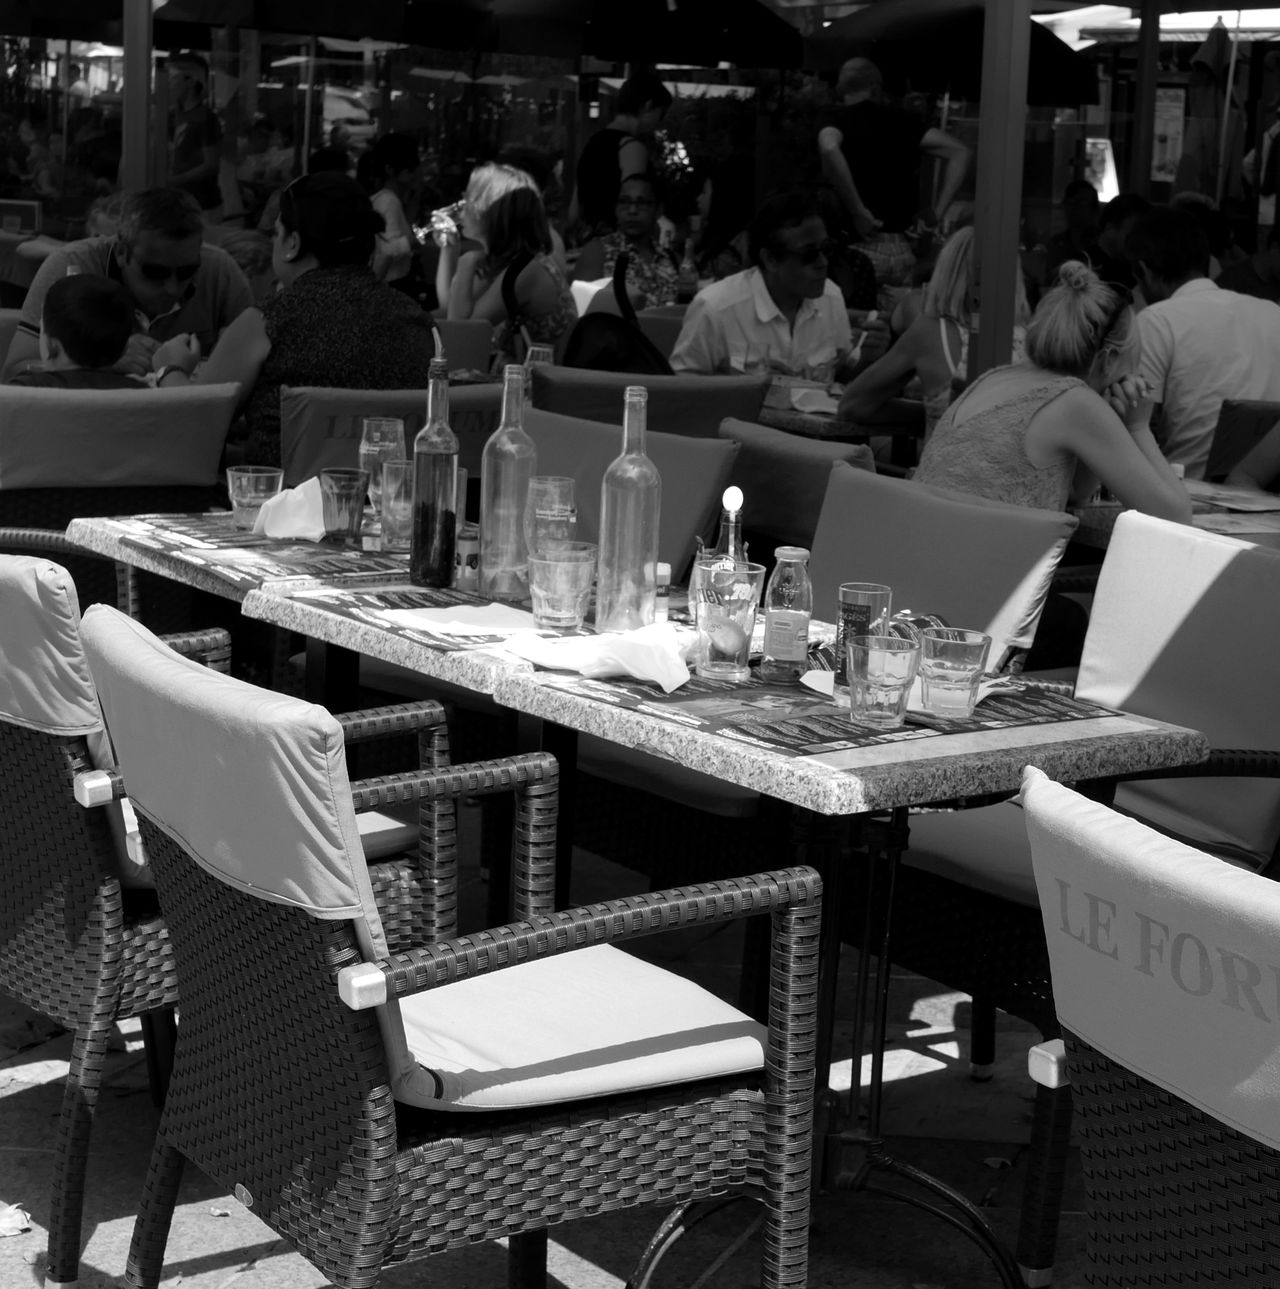 Outdoor Restaurant Black And White Creative Light And Shadow Table Avignon France